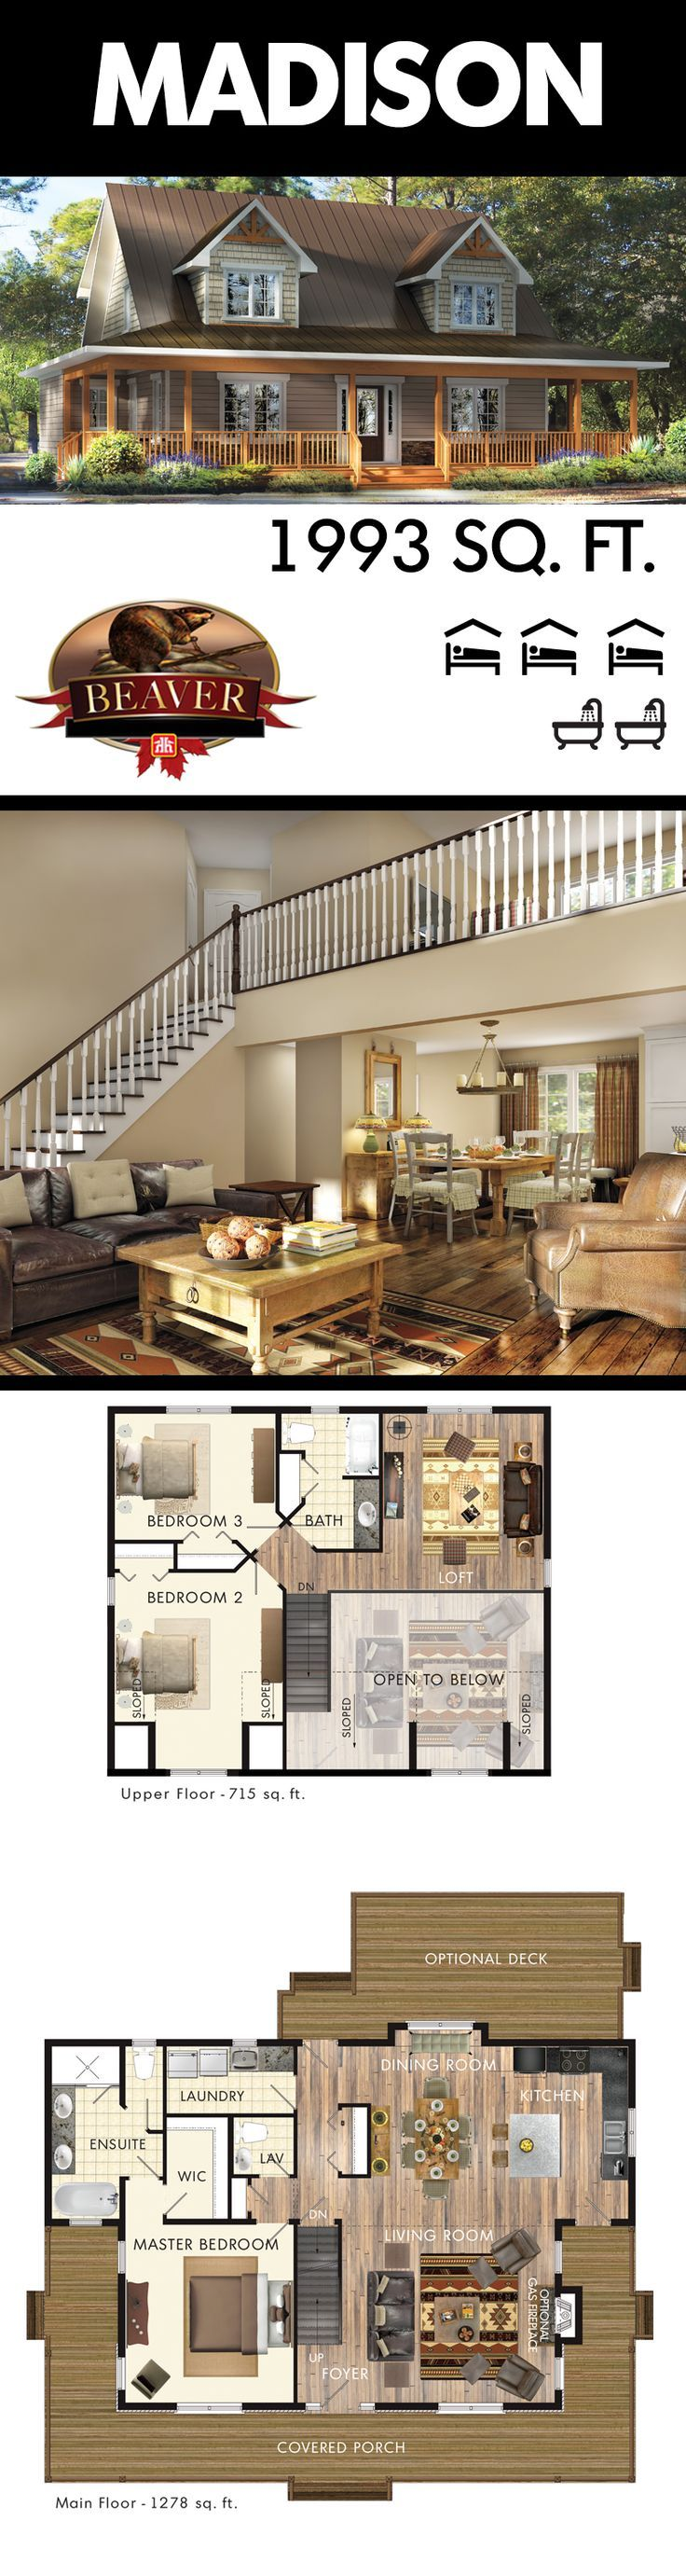 Cape cod house interior exterior plans with garage remodel also style ideas and floor  rh pinterest